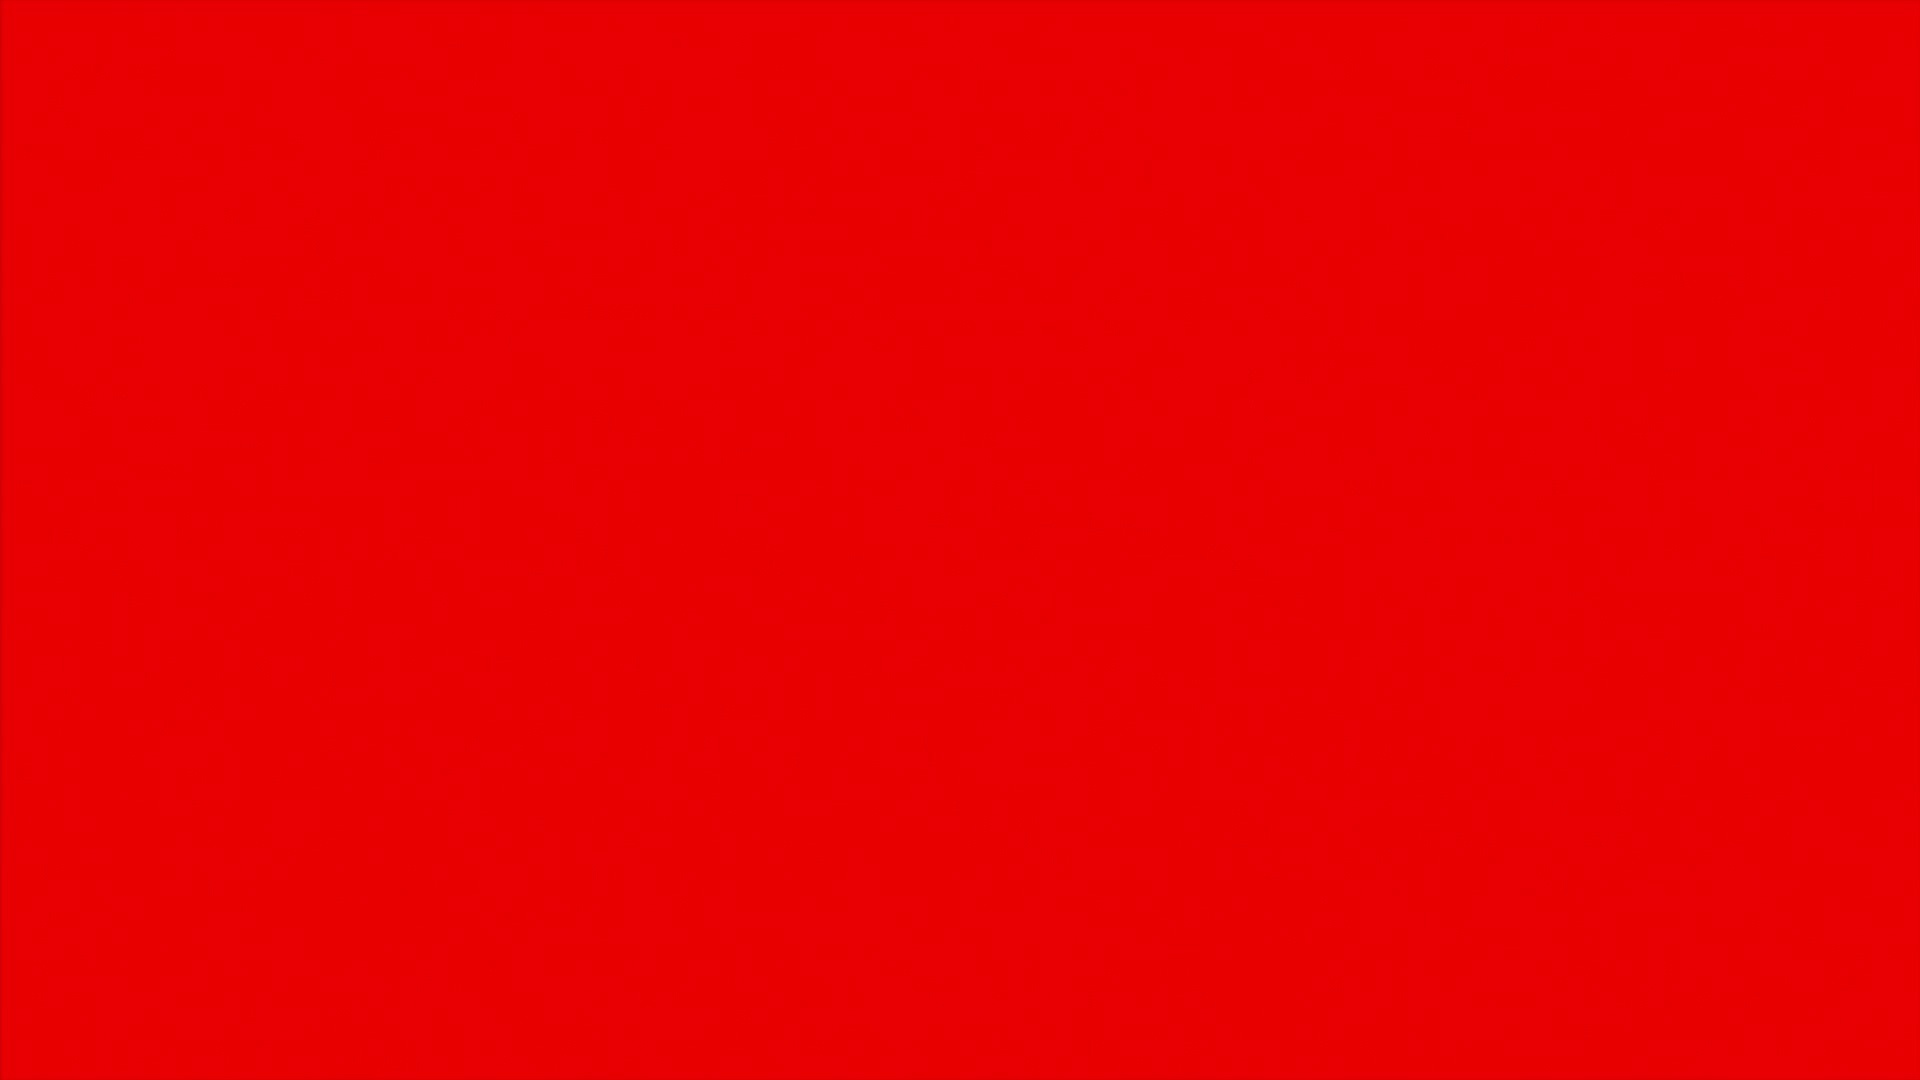 Solid Red wallpaper download